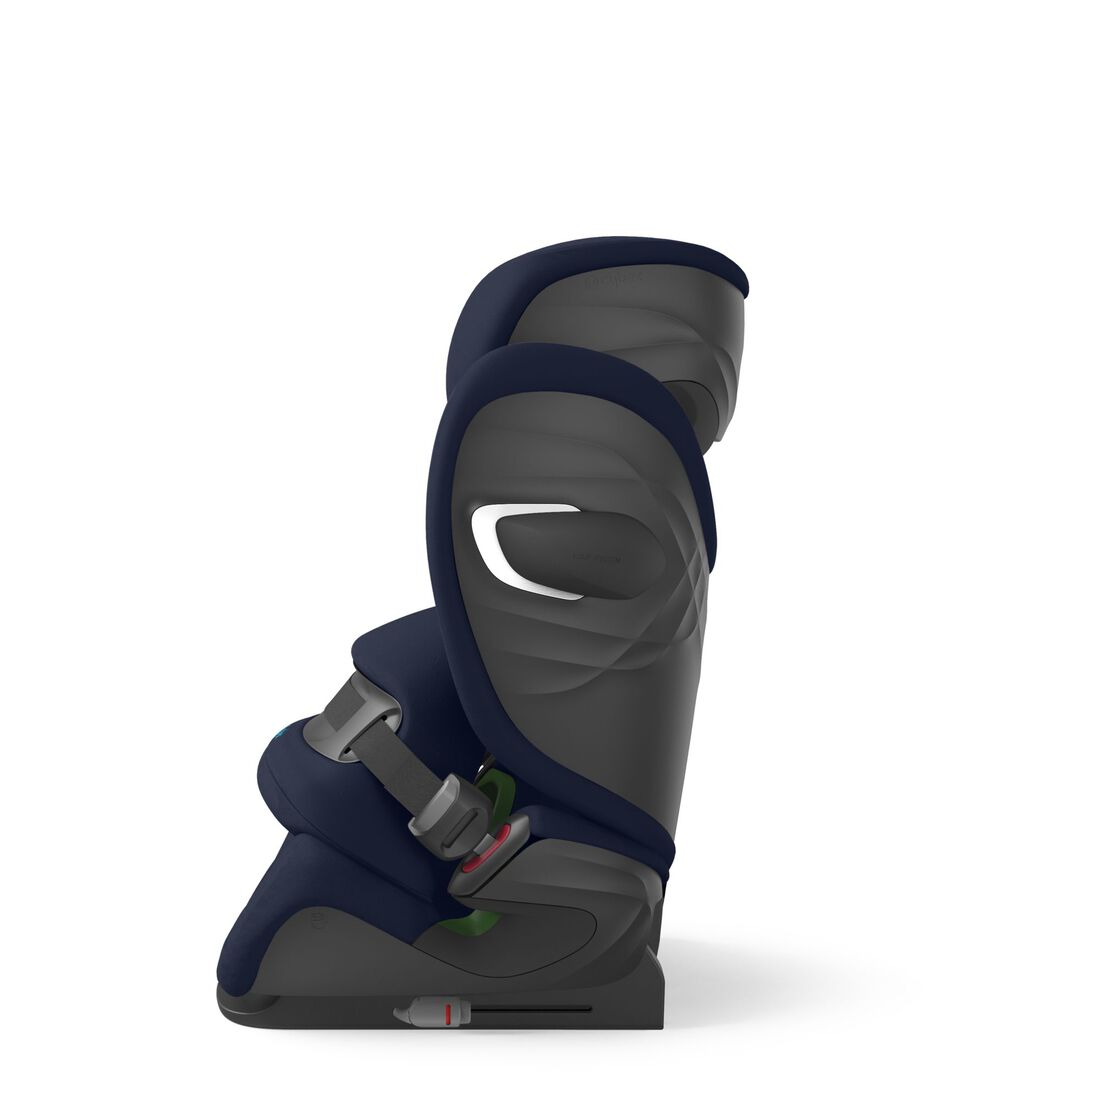 CYBEX Pallas G i-Size - Navy Blue in Navy Blue large image number 3